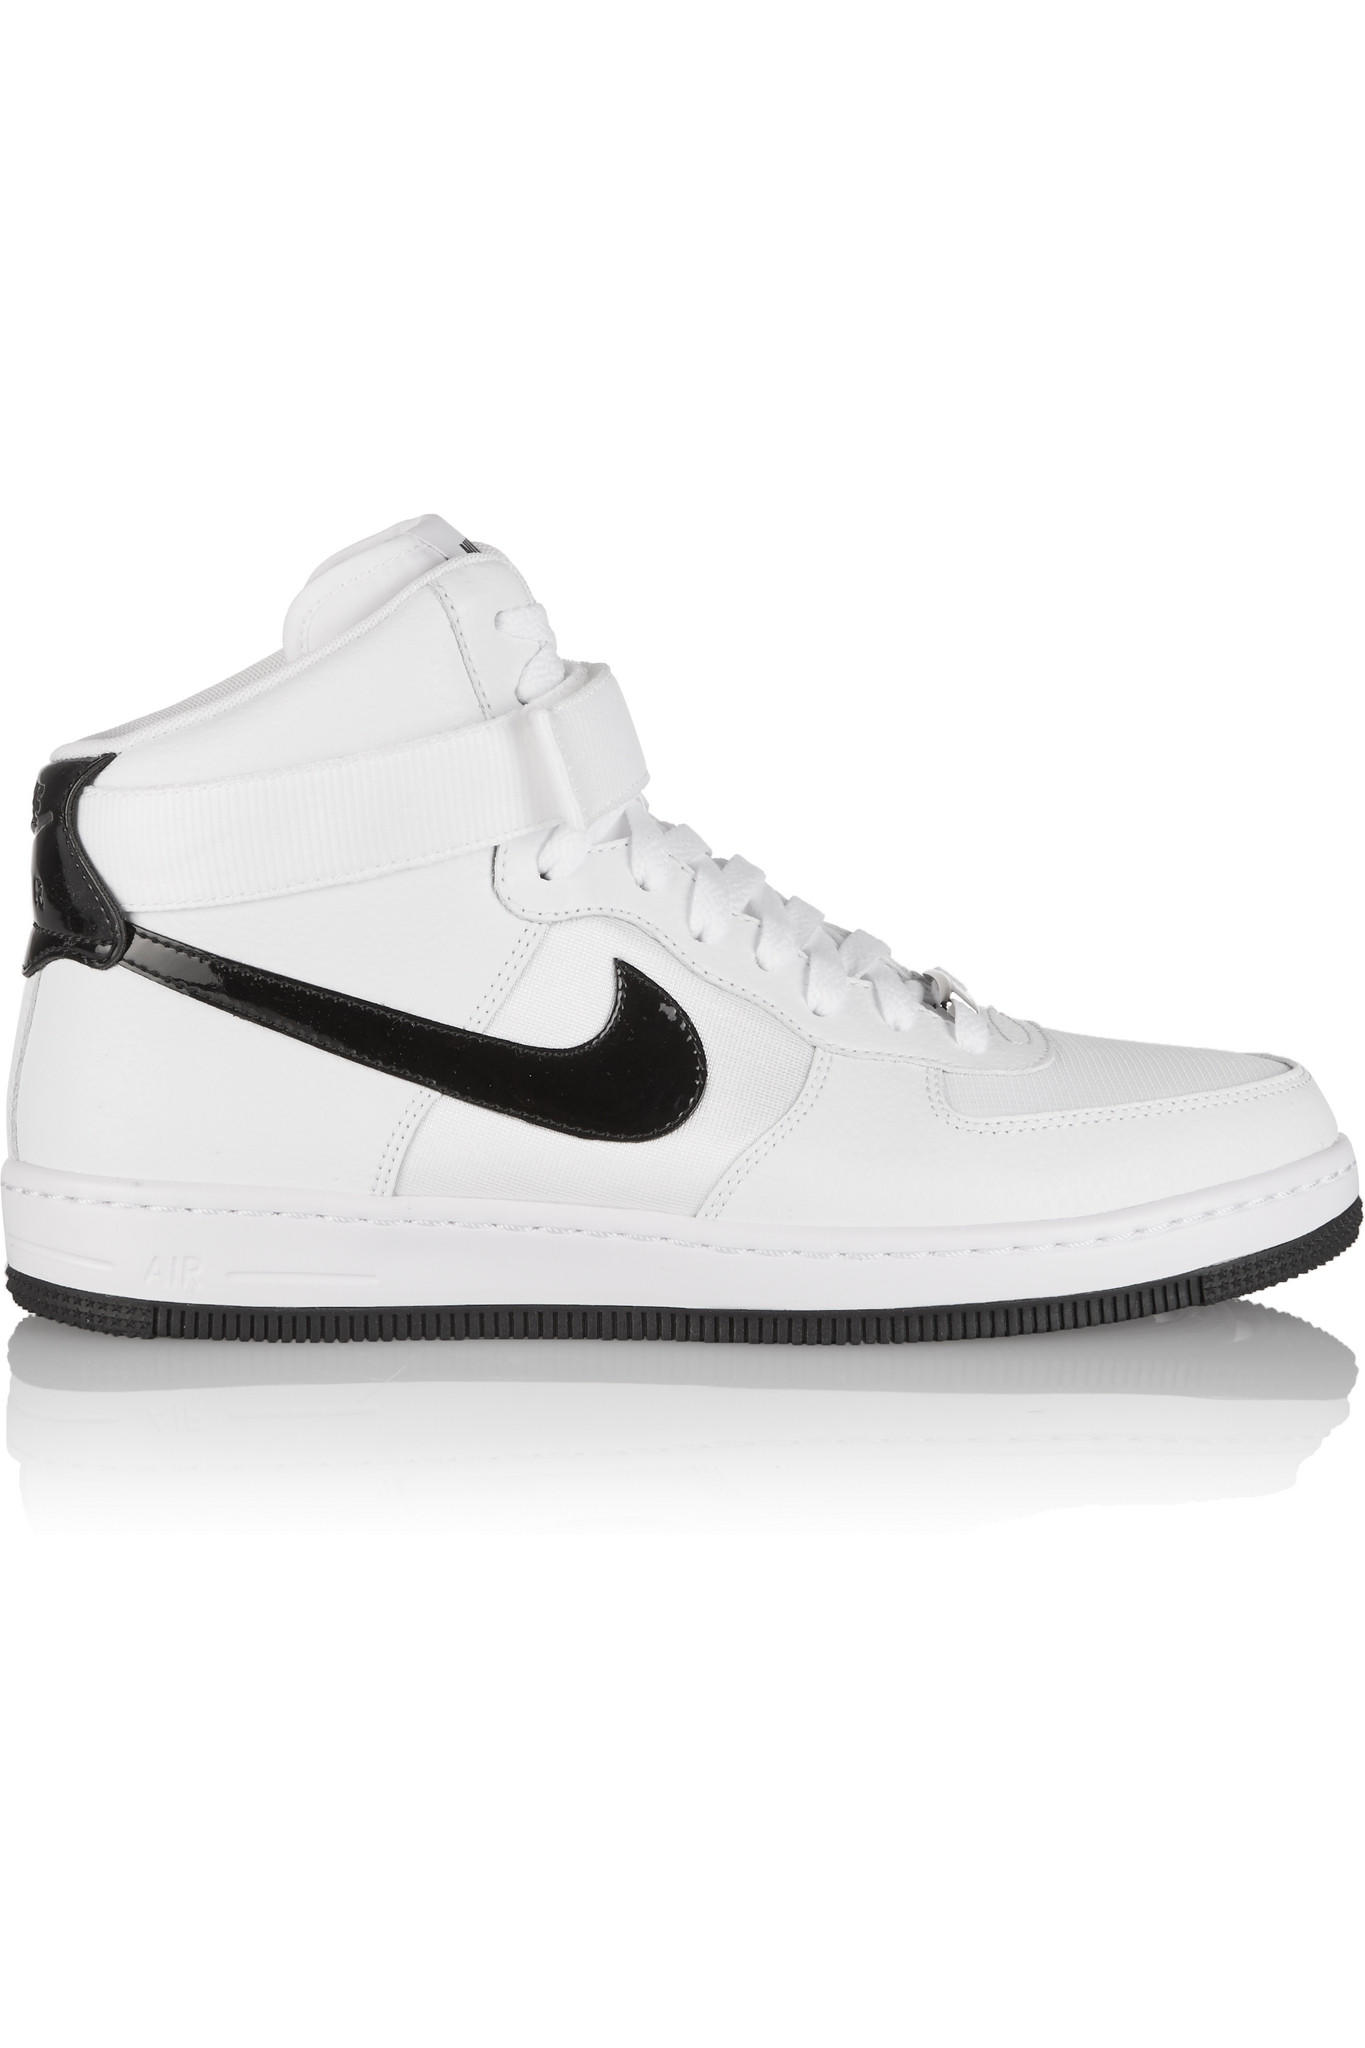 Nike - Air Force 1 Ultra Force leather from NET-A-PORTER 8476a6d152